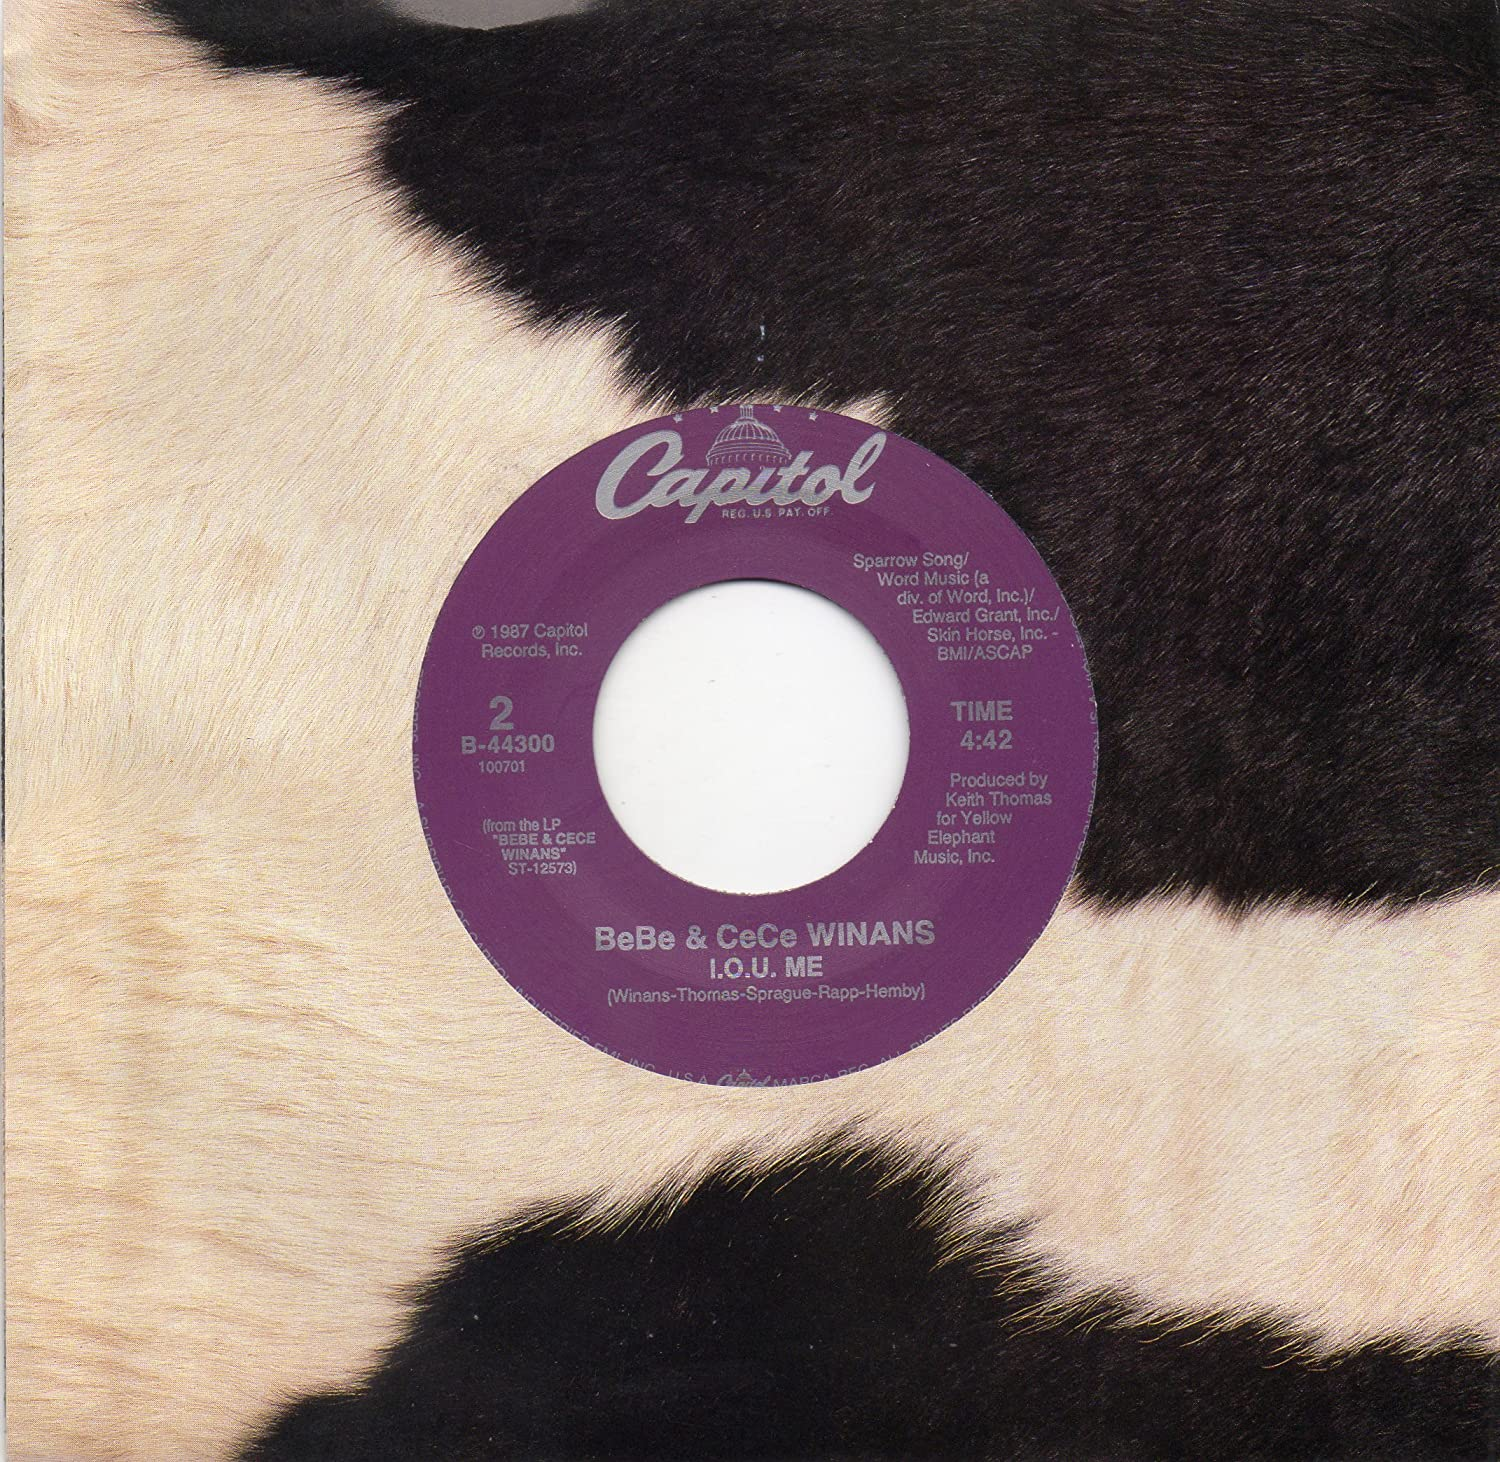 Amazon.com: lost without you / same 45 rpm single: Music